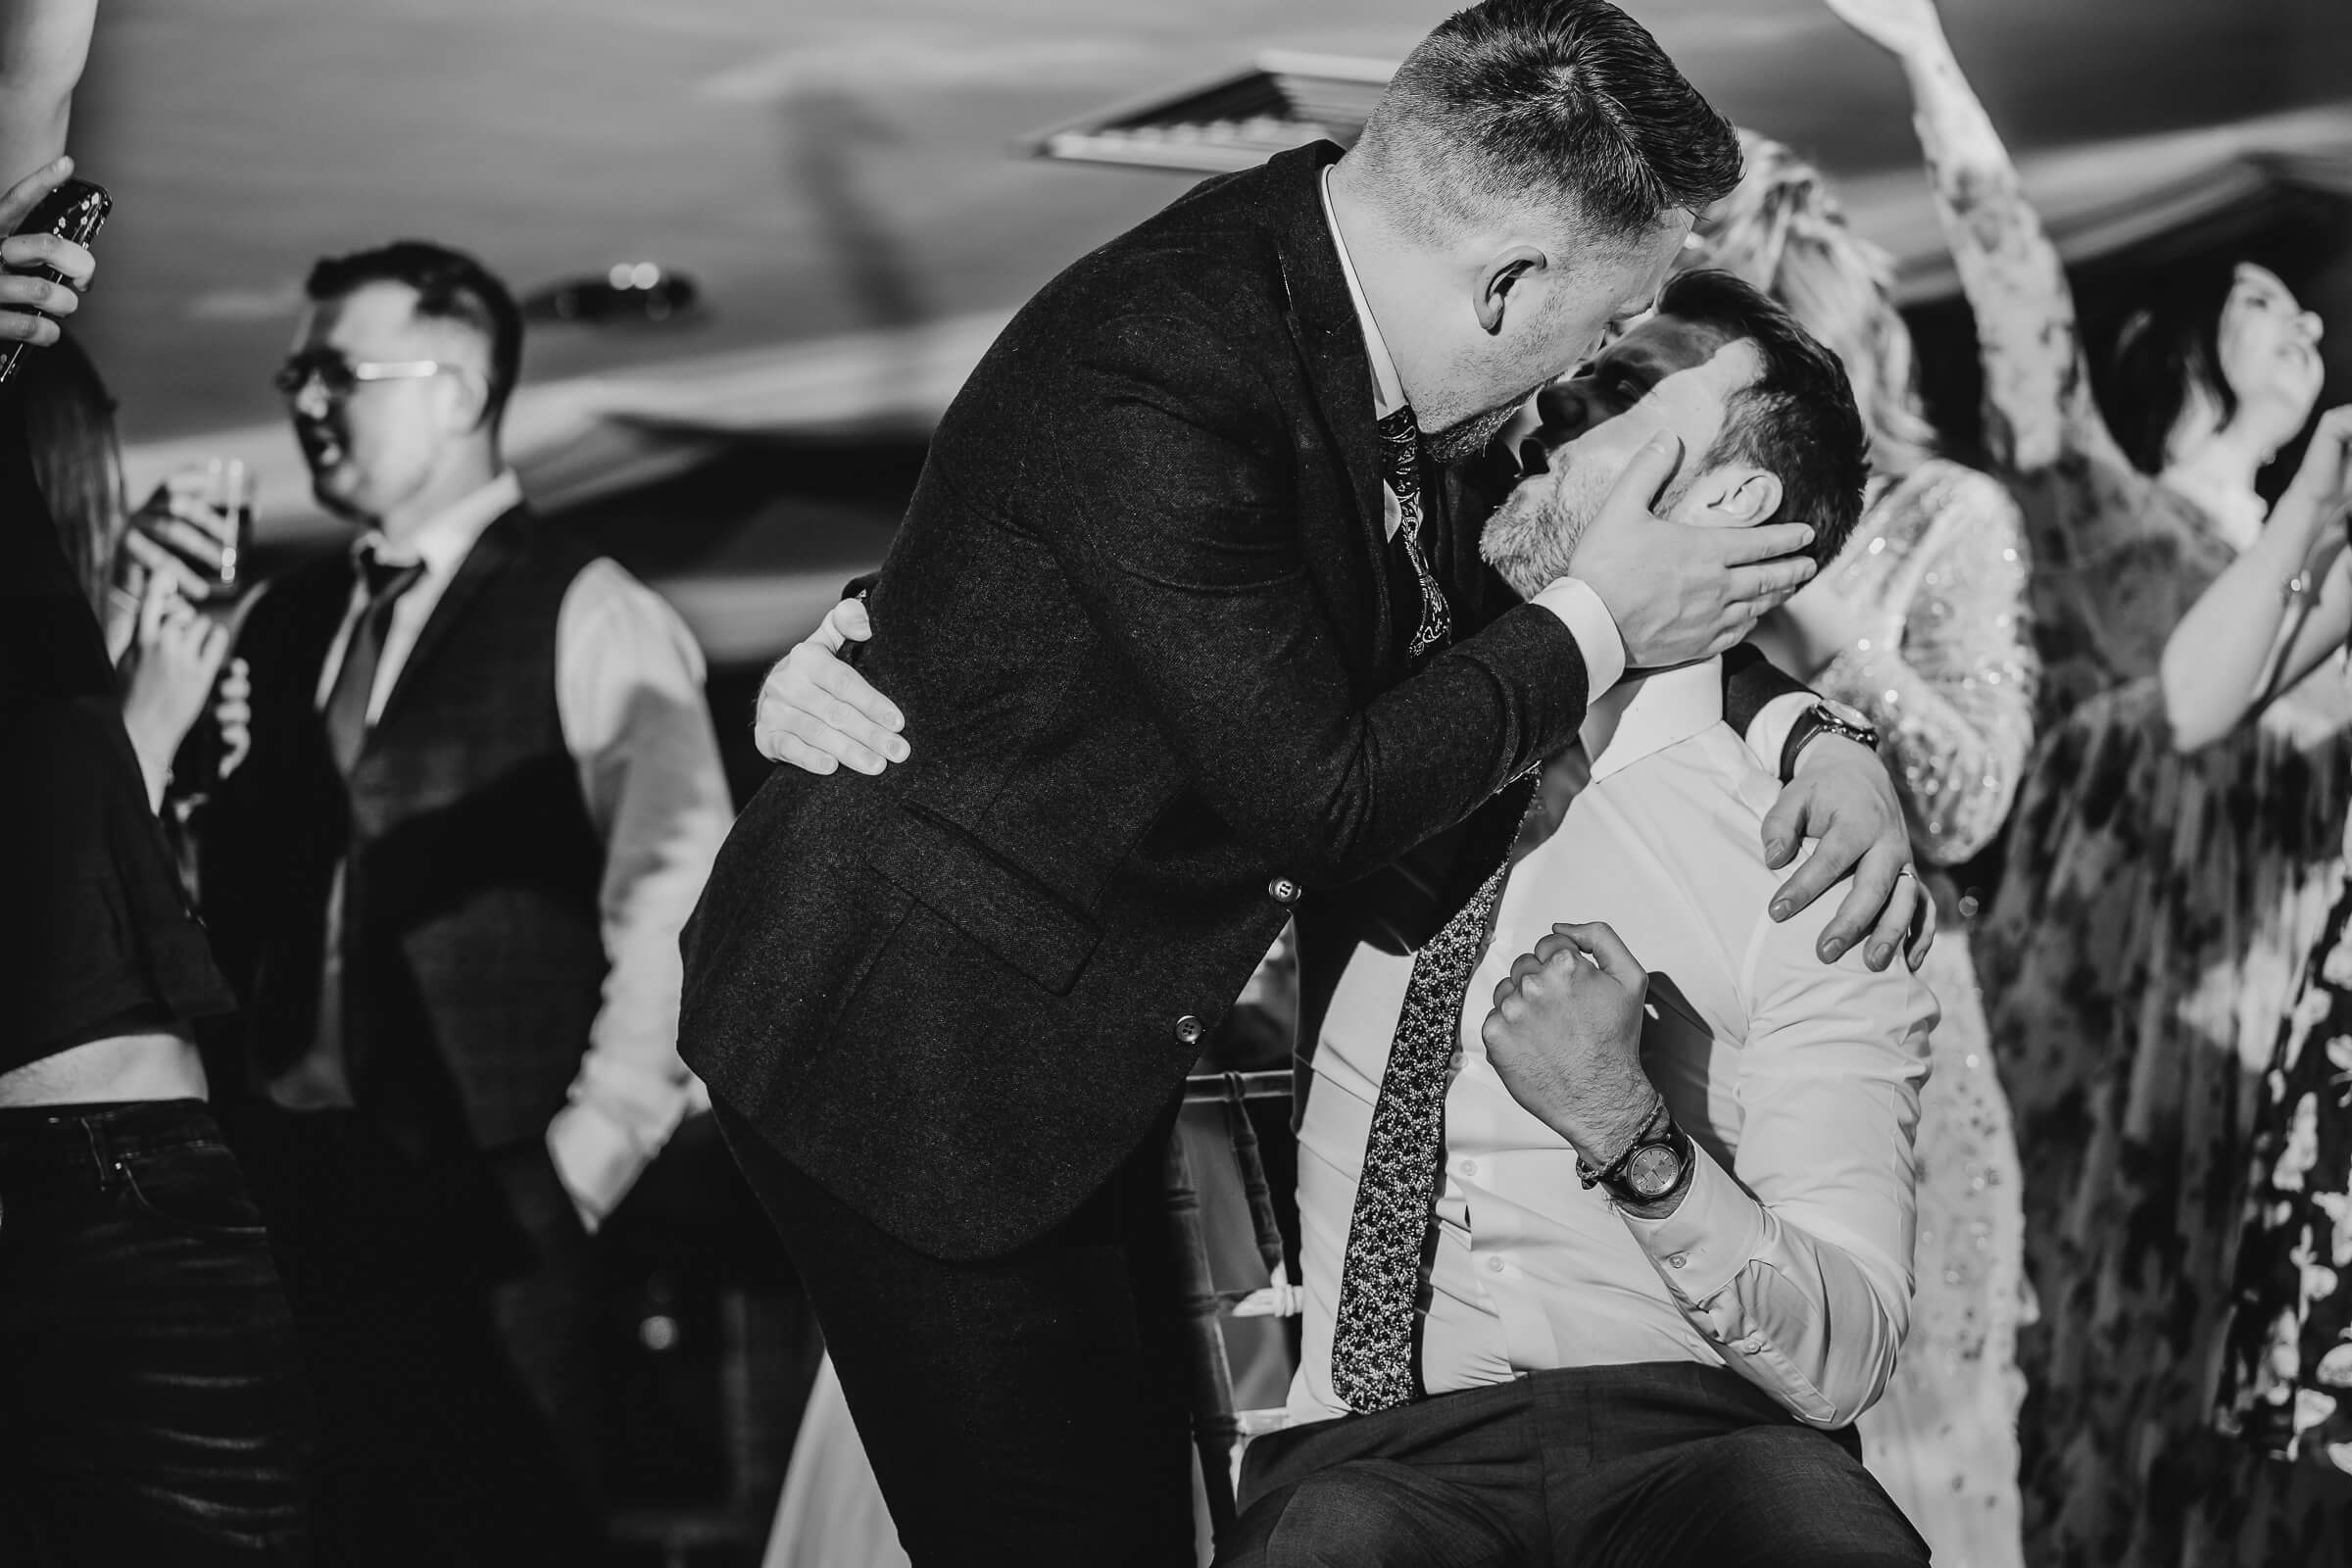 Groom and friend having fun on dance floor